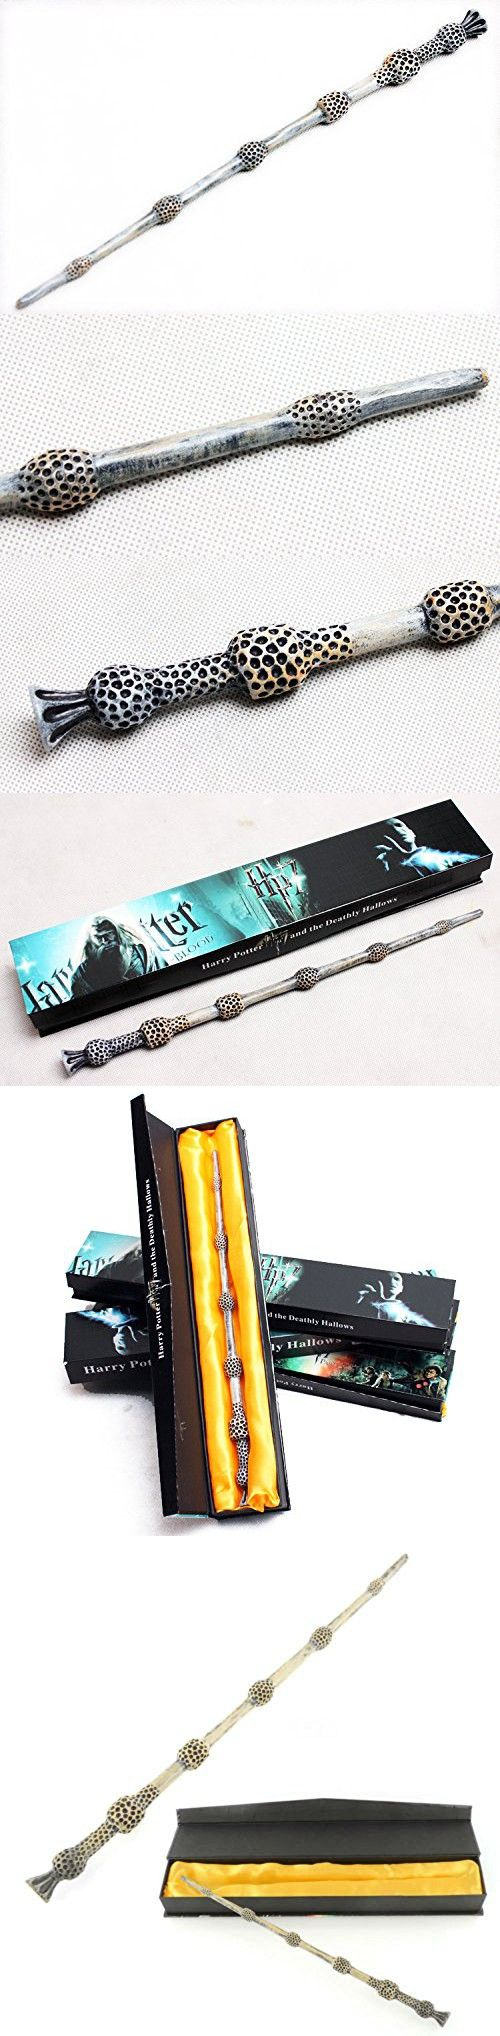 Vision 1:1 Harry Potter Magic Wand Series Replica With Original Gift Box. Albus Dumbledore Wand